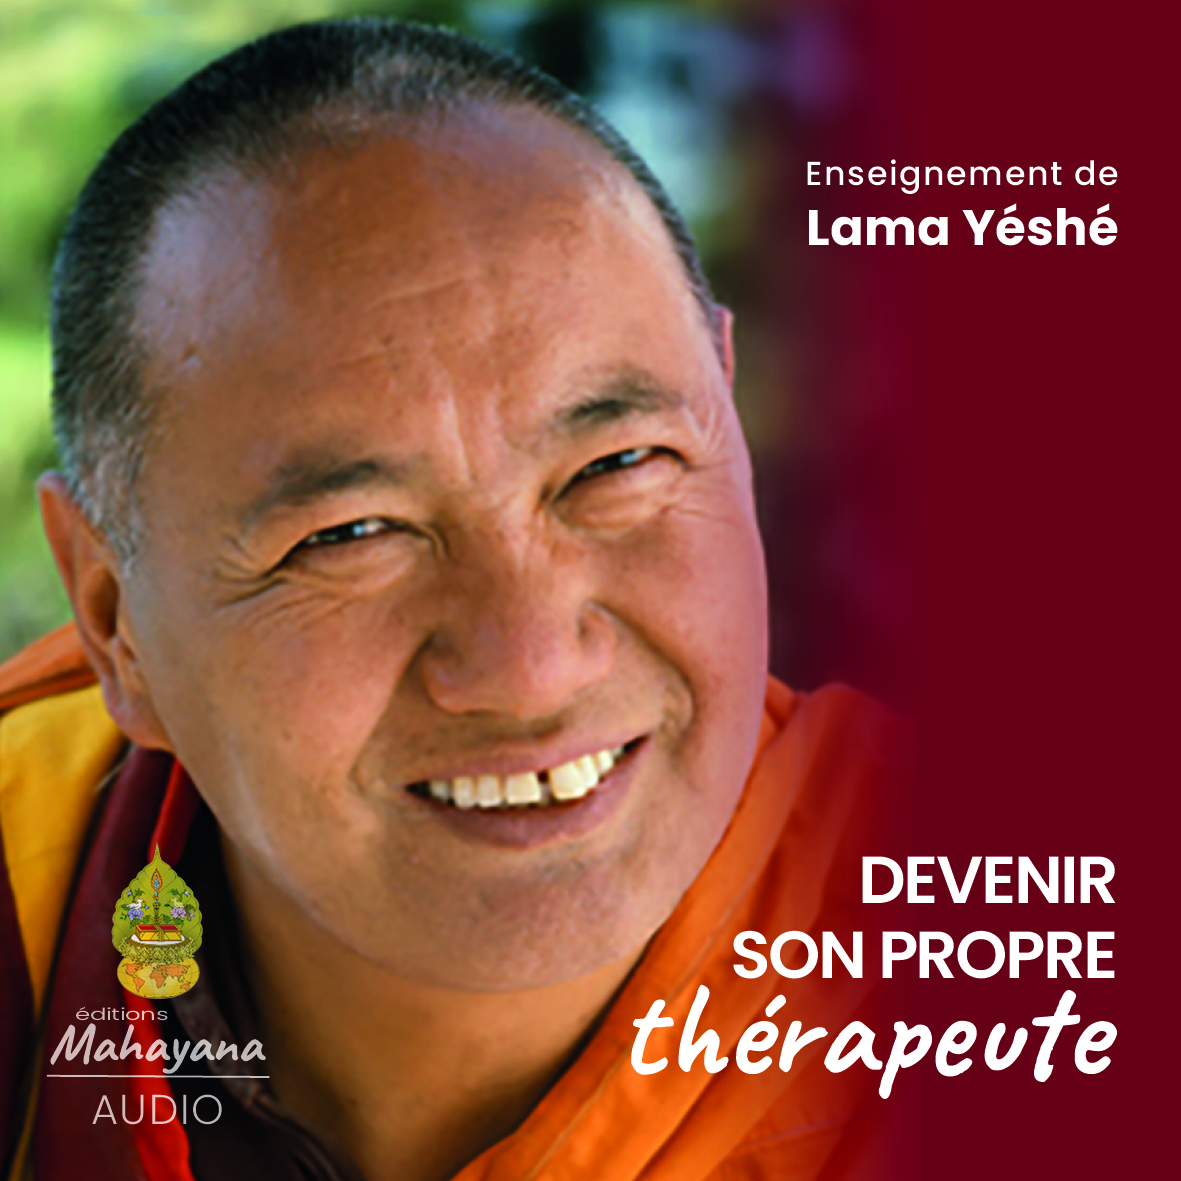 editions mahayana devenir son propre thérapeute lama yeshe